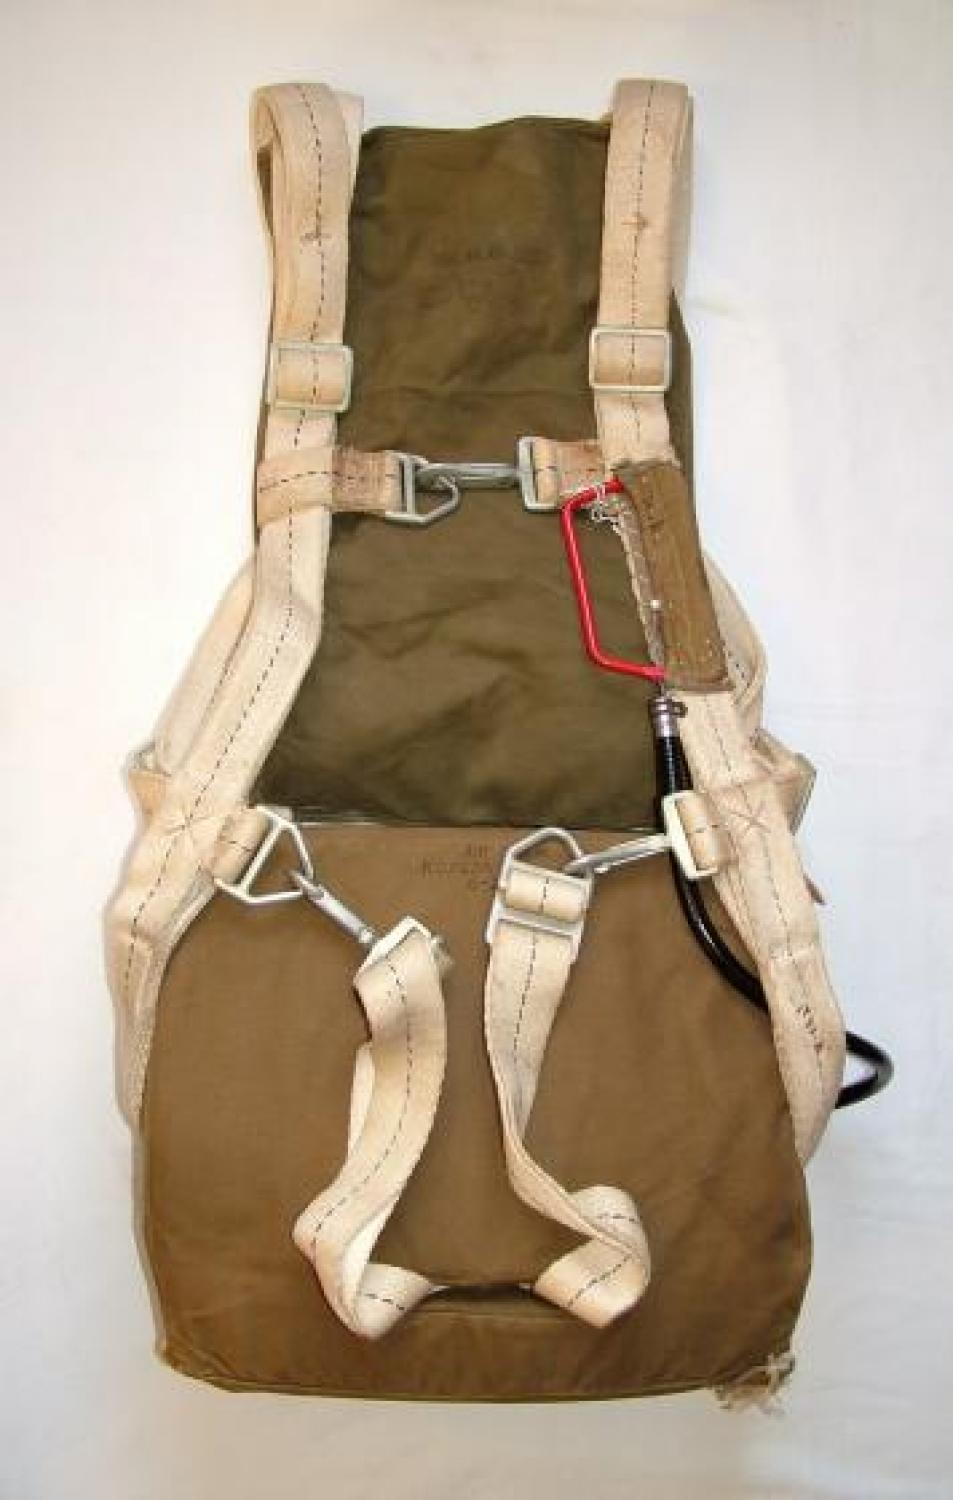 USAAF AN6510-1 Seat Type Parachute Assembly